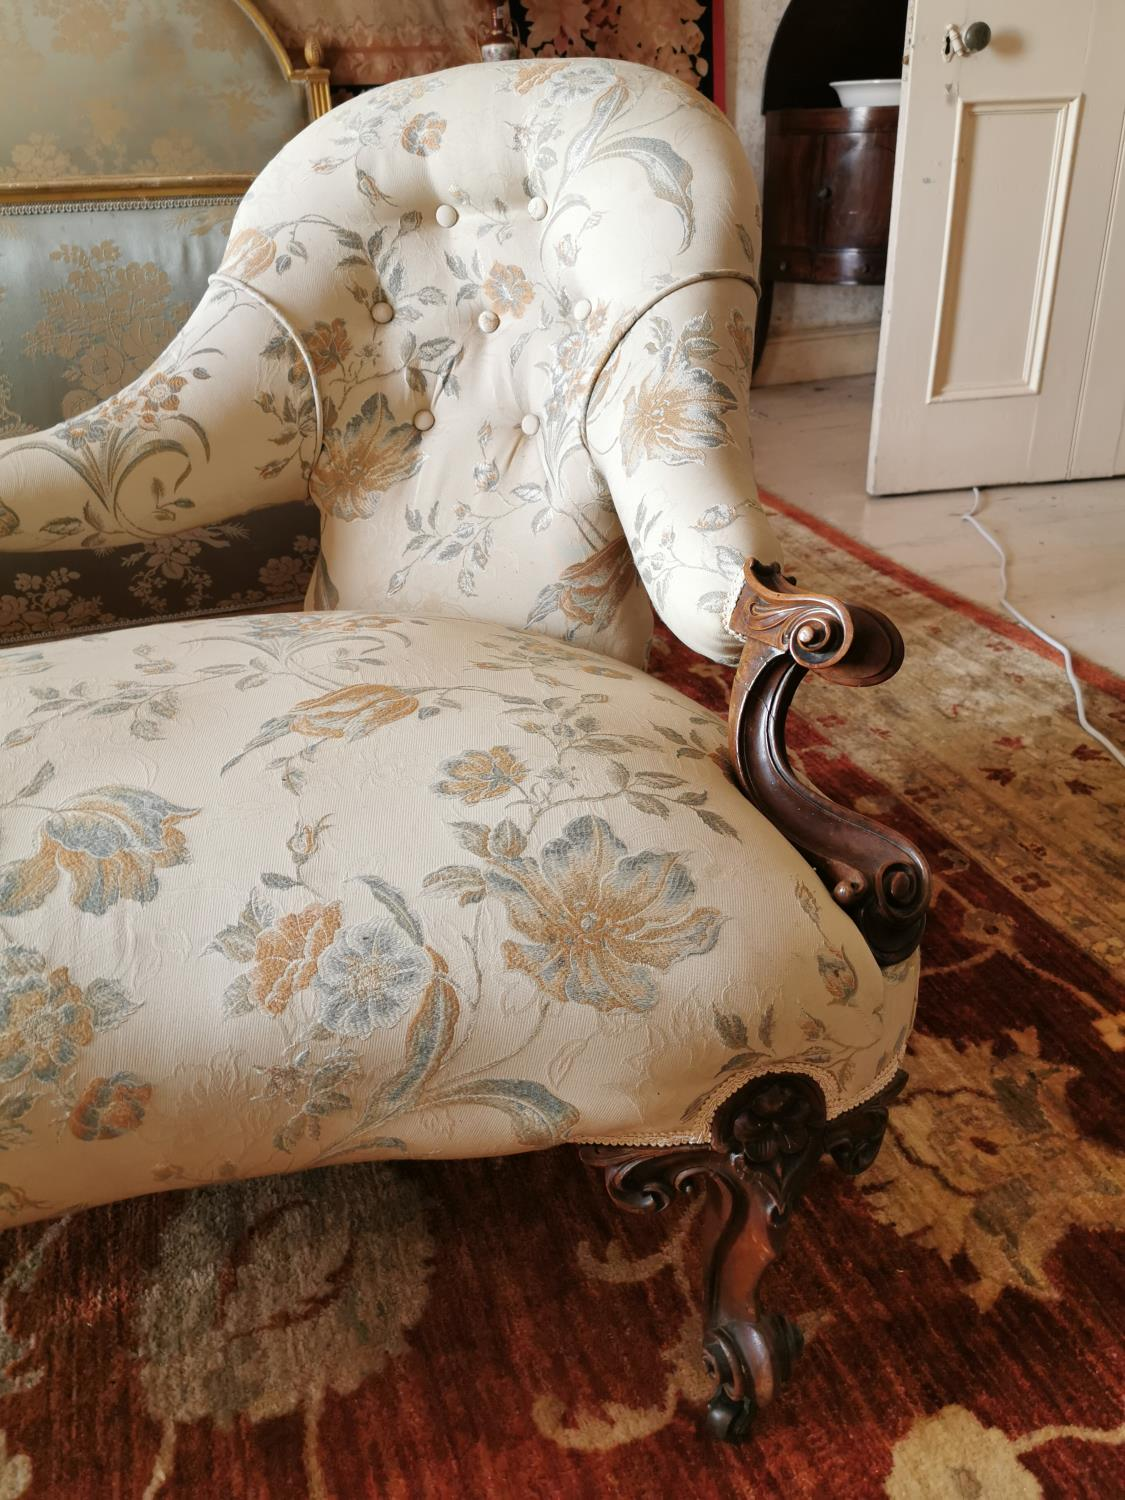 19th C. mahogany and upholstered conversation seat. - Image 2 of 4